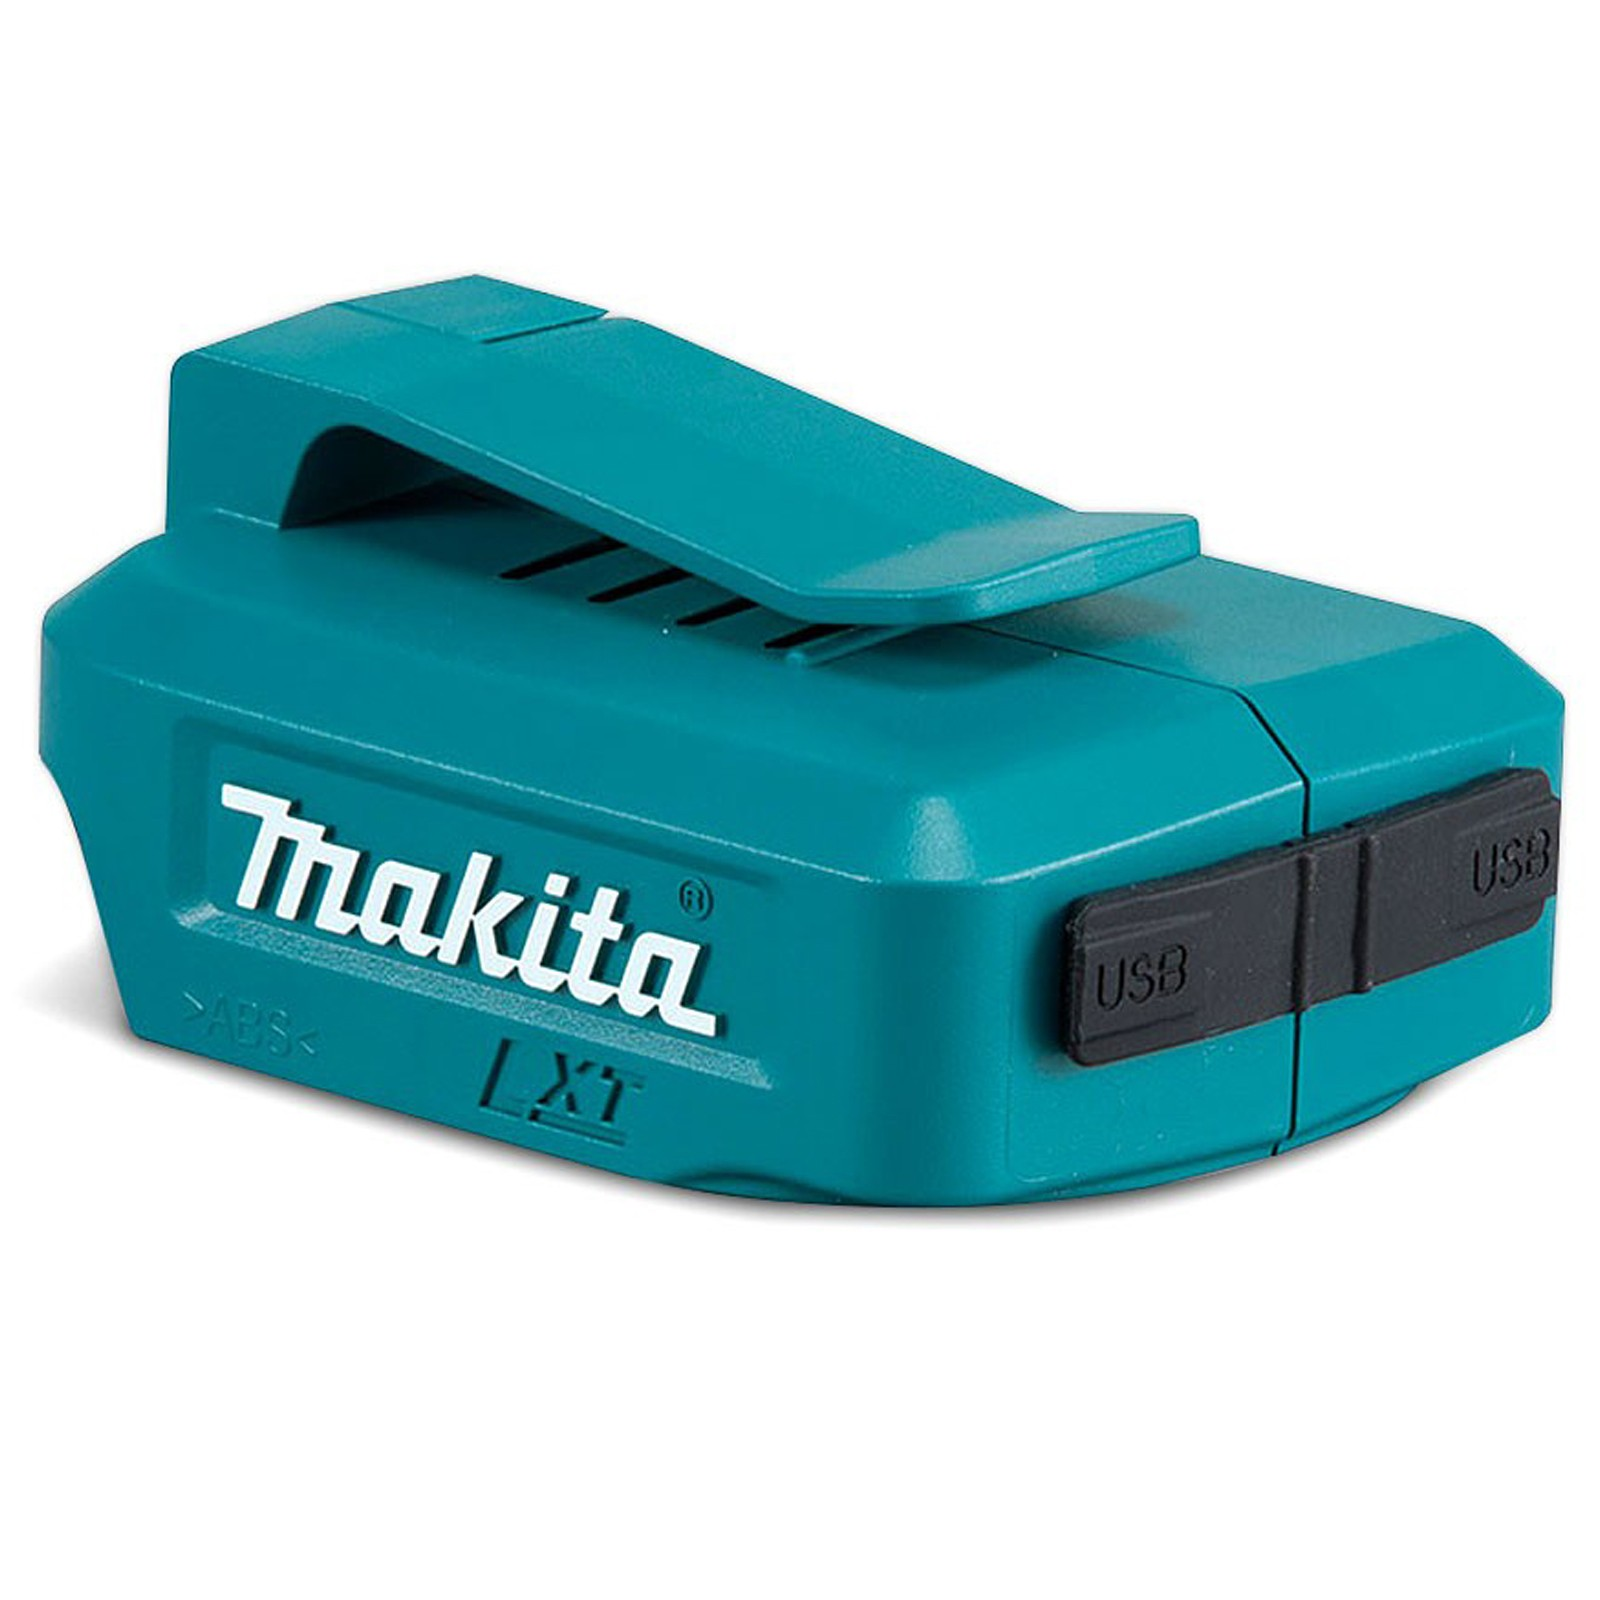 makita deaadp05 usb charging 18v lxt lithium ion battery adapter powertool world. Black Bedroom Furniture Sets. Home Design Ideas